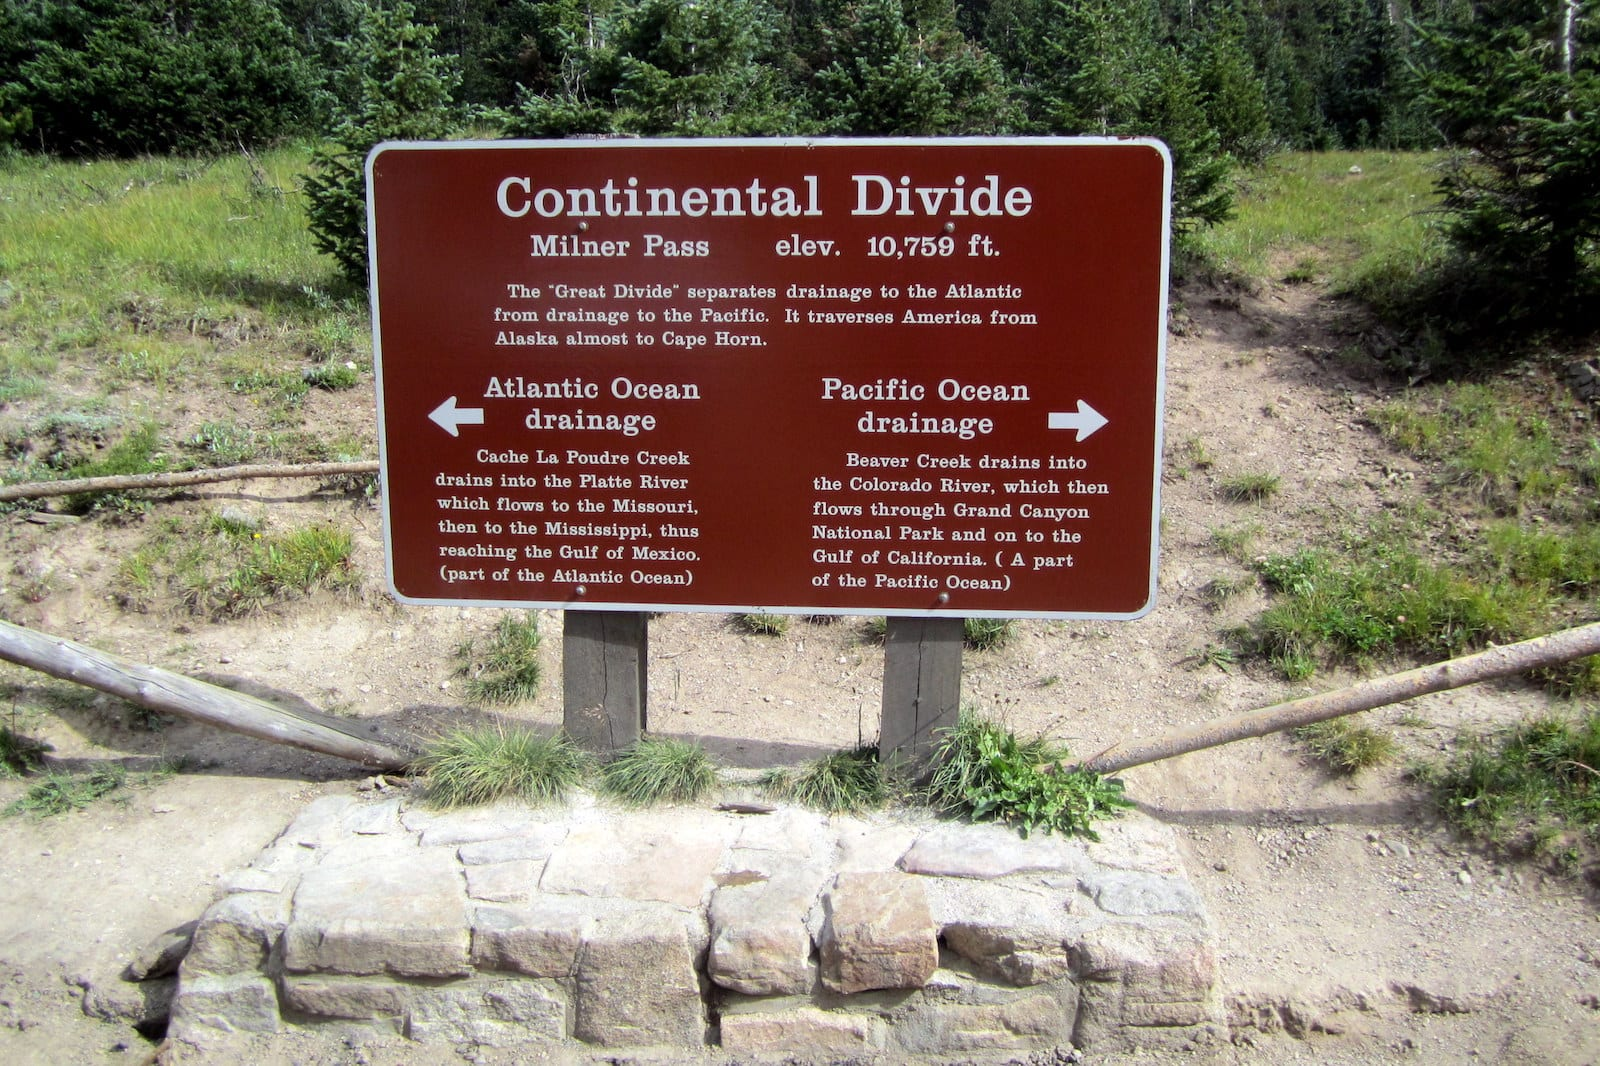 Continental Divide Drainage Sign Milner Pass Colorado